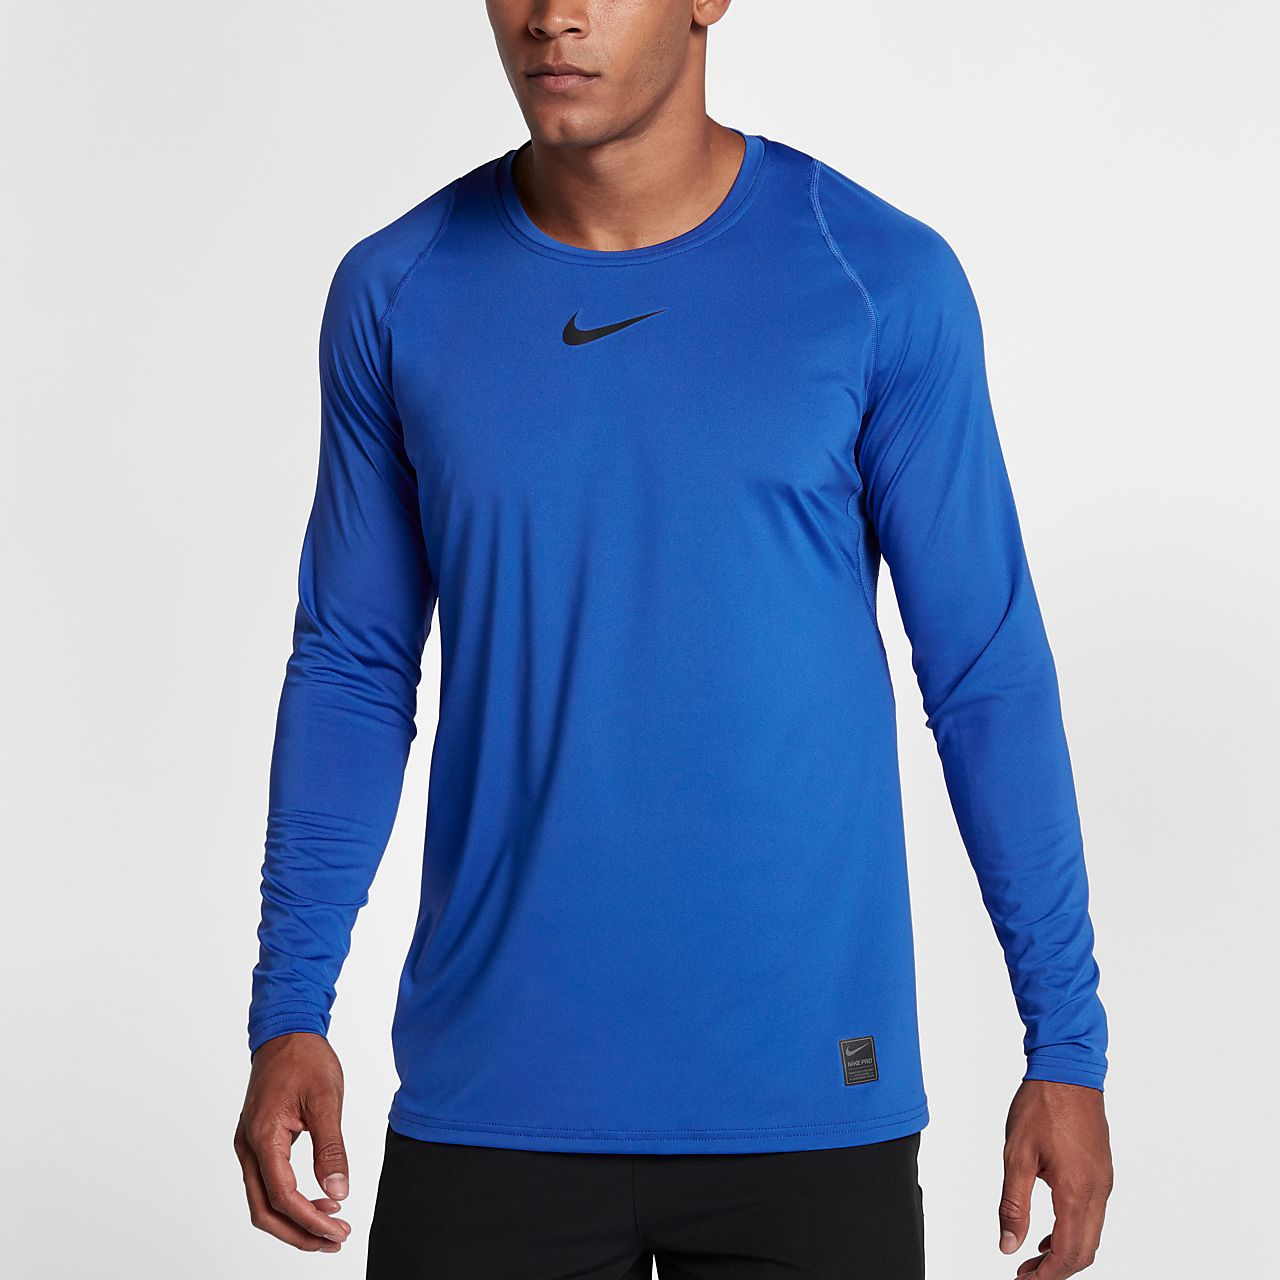 dab28e60e Nike Pro Men's Long-Sleeve Fitted Top. Nike.com